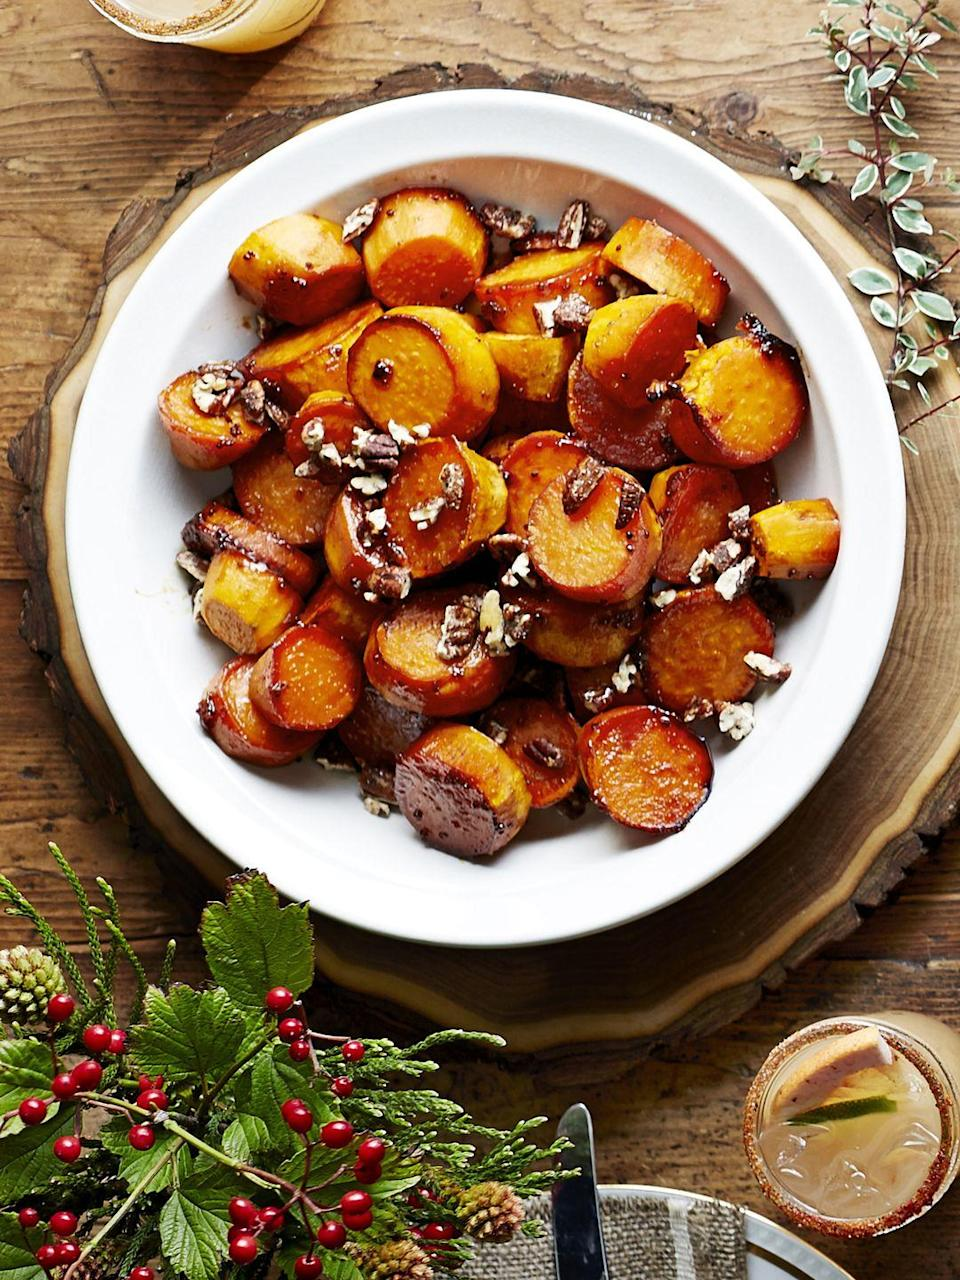 """<p>A sprinkle of candied or spiced pecans adds the perfect amount of crunch to these rich, syrupy sweet potatoes.</p><p><em><a href=""""https://www.goodhousekeeping.com/food-recipes/a16043/sorghum-sweet-potatoes-recipe-clx1114/"""" rel=""""nofollow noopener"""" target=""""_blank"""" data-ylk=""""slk:Get the recipe for Sorghum-Glazed Sweet Potatoes »"""" class=""""link rapid-noclick-resp"""">Get the recipe for Sorghum-Glazed Sweet Potatoes »</a></em></p><p><strong>RELATED: </strong><a href=""""https://www.goodhousekeeping.com/food-recipes/g657/sweet-potato-recipes/"""" rel=""""nofollow noopener"""" target=""""_blank"""" data-ylk=""""slk:40 Best Sweet Potato Recipes That Are Perfect for Any Fall Occasion"""" class=""""link rapid-noclick-resp"""">40 Best Sweet Potato Recipes That Are Perfect for Any Fall Occasion</a></p>"""